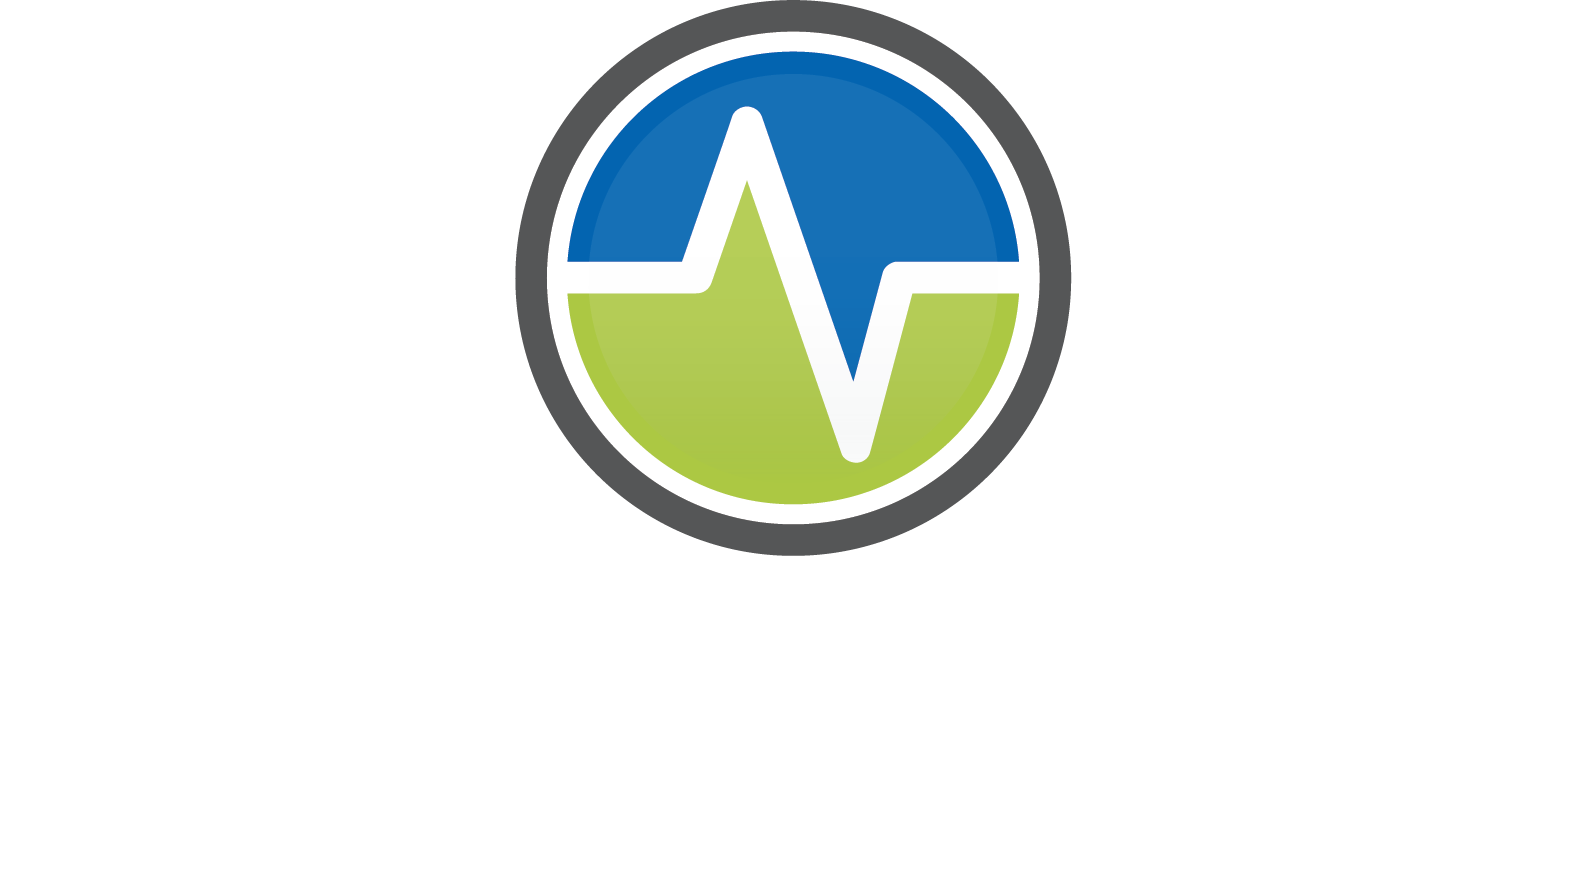 2020 logo with date